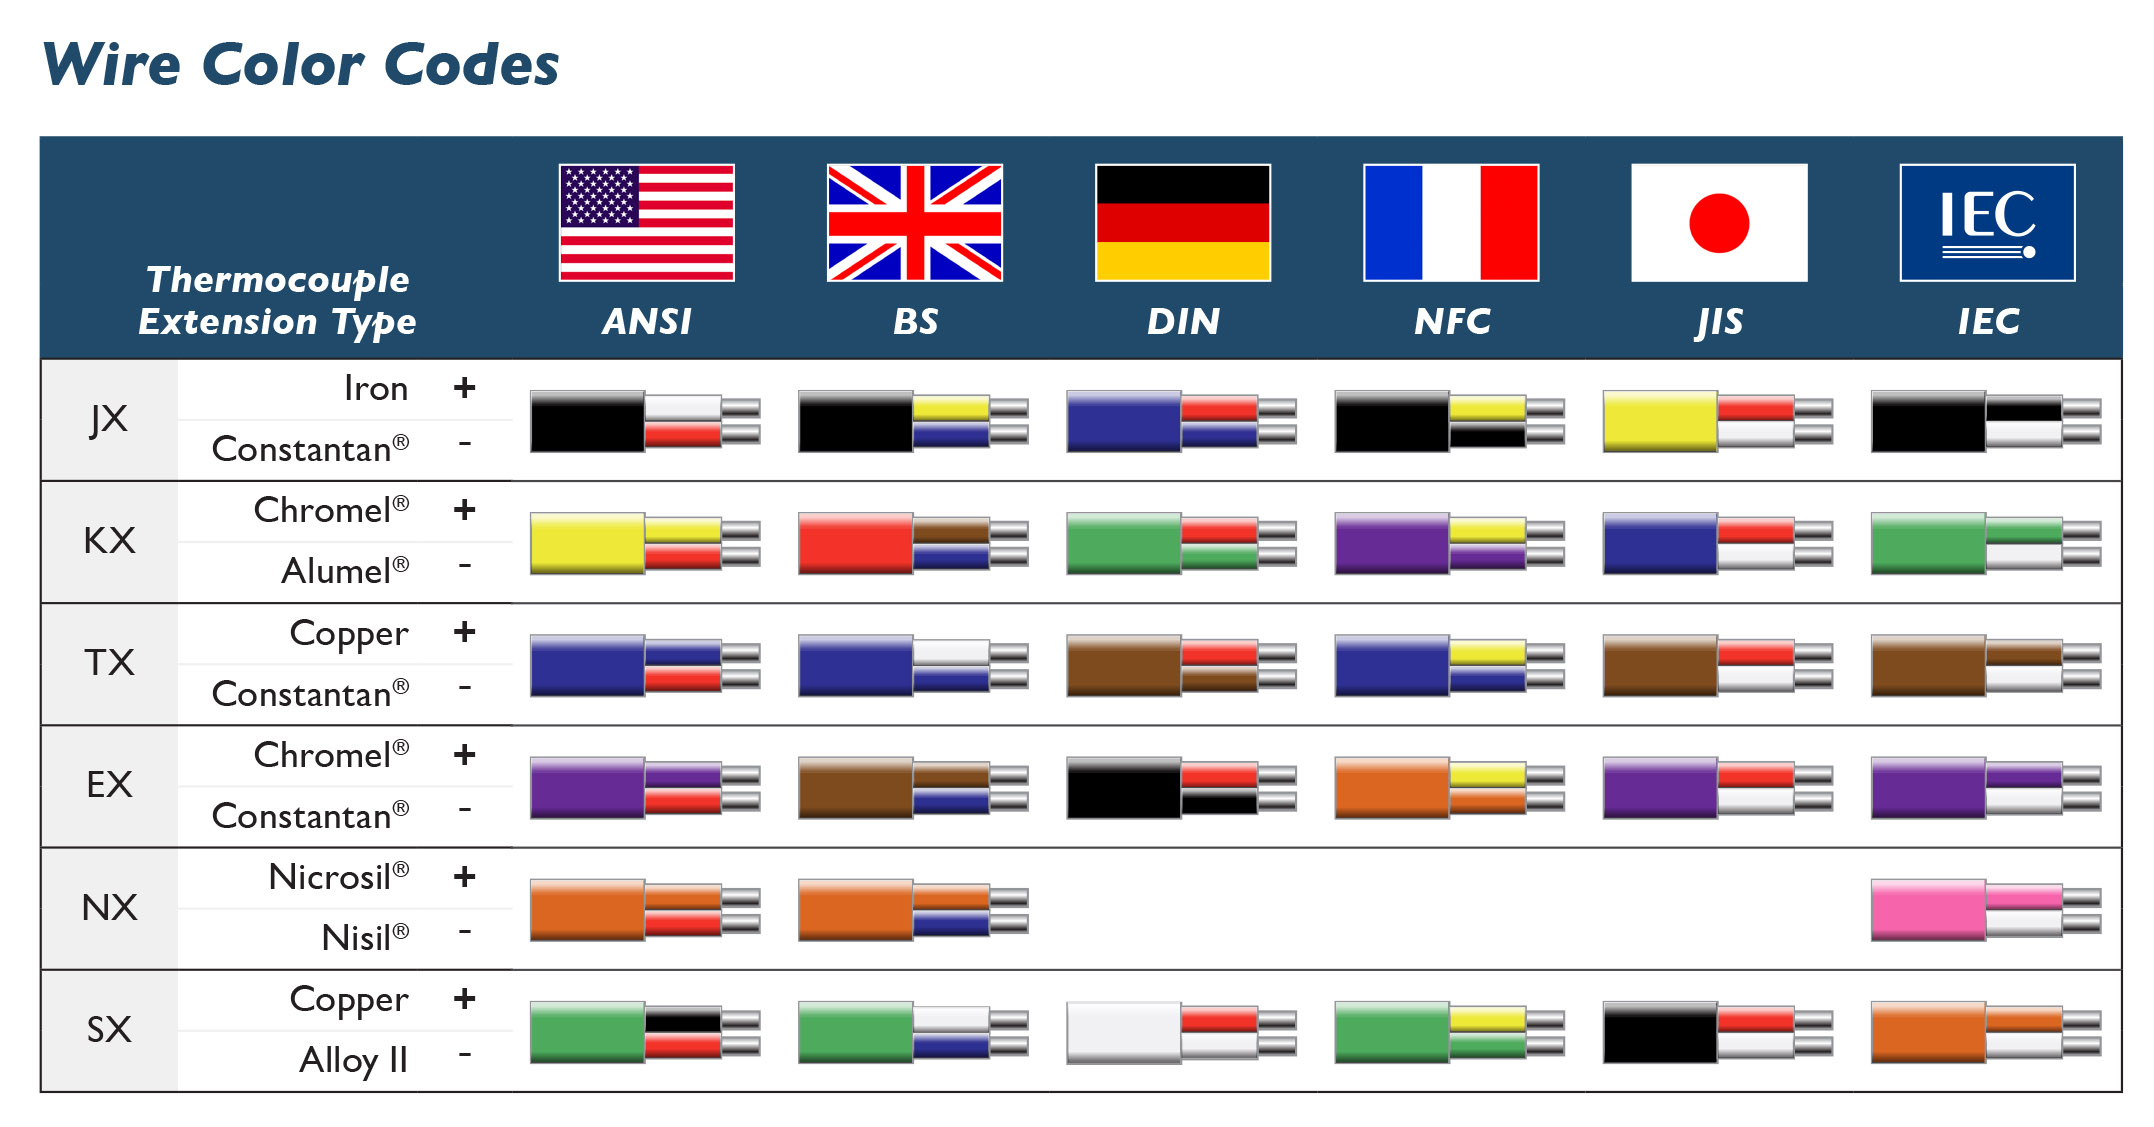 International Color Codes | TE Wire & Cable | Thermocouple Wire ...